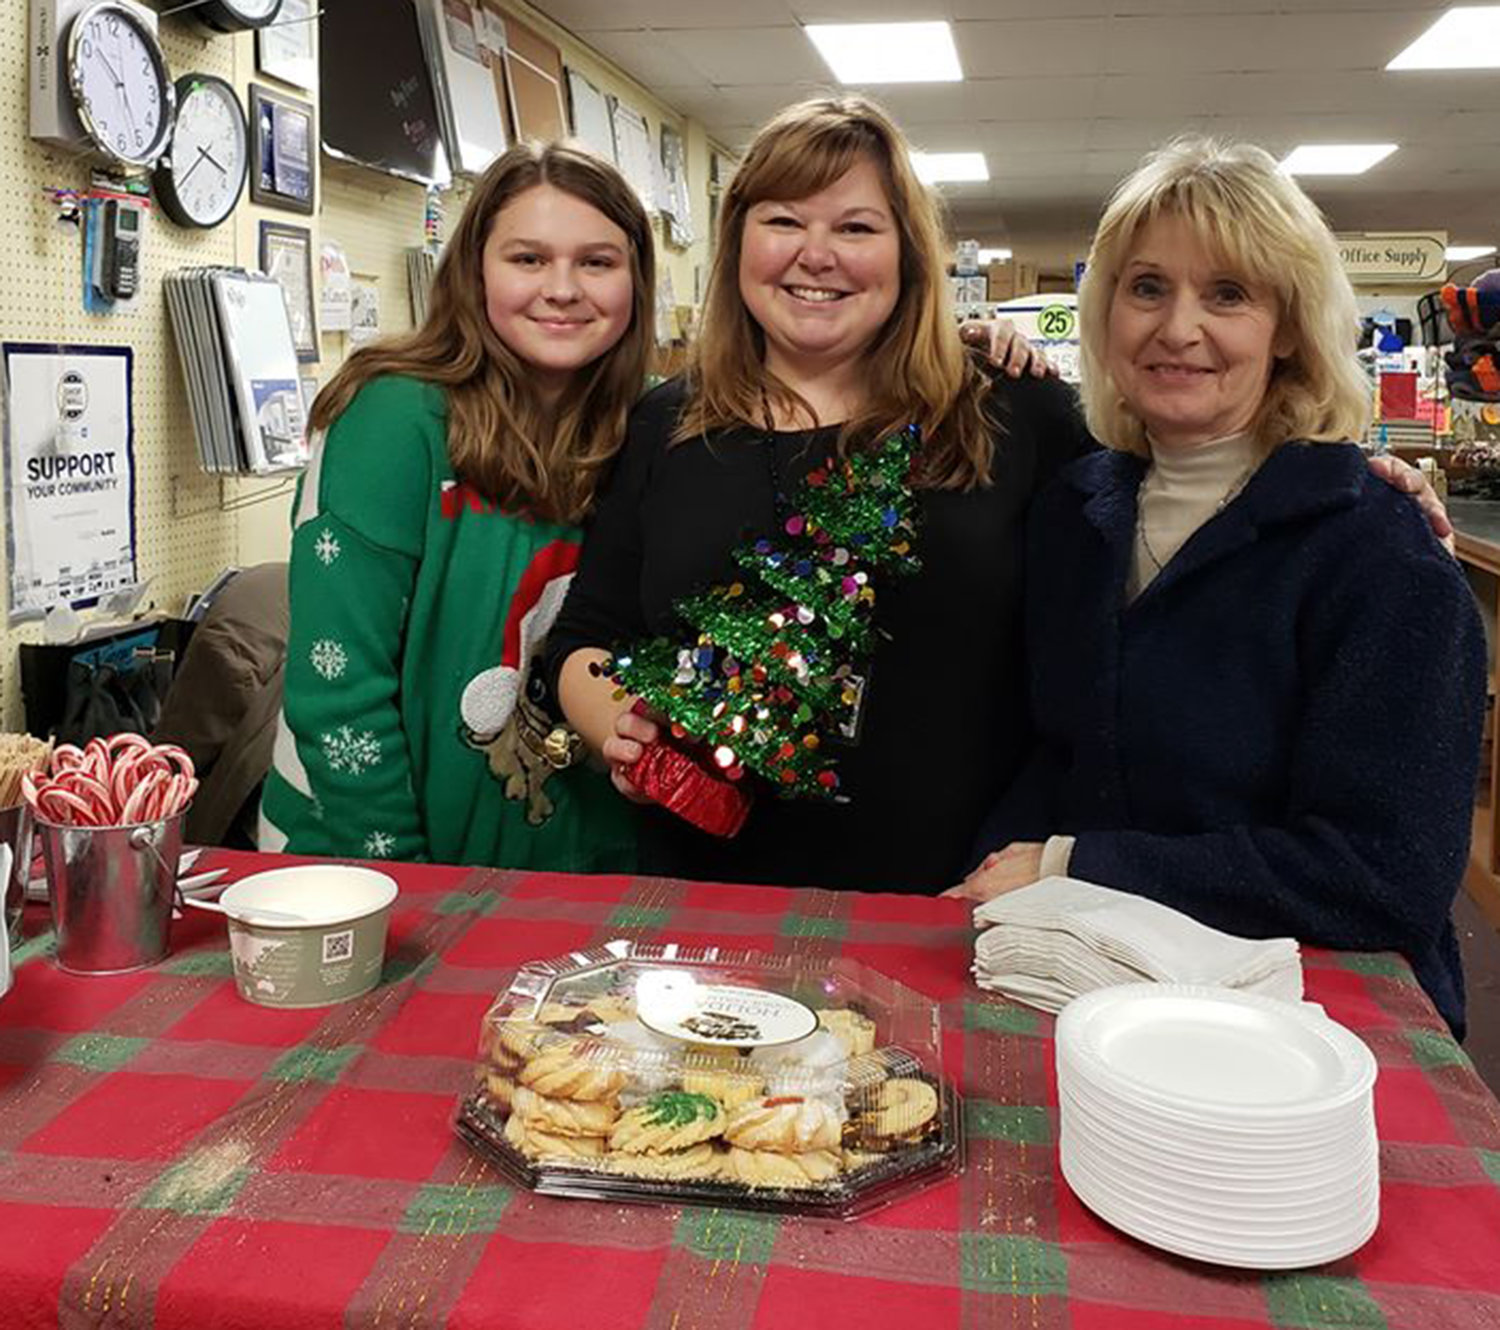 CHRISTMAS TREATS — Oneida Office Supply welcomes residents in for a cookie or two for the Oneida Christmas Story Downtown Stroll on Sunday, Dec. 1.